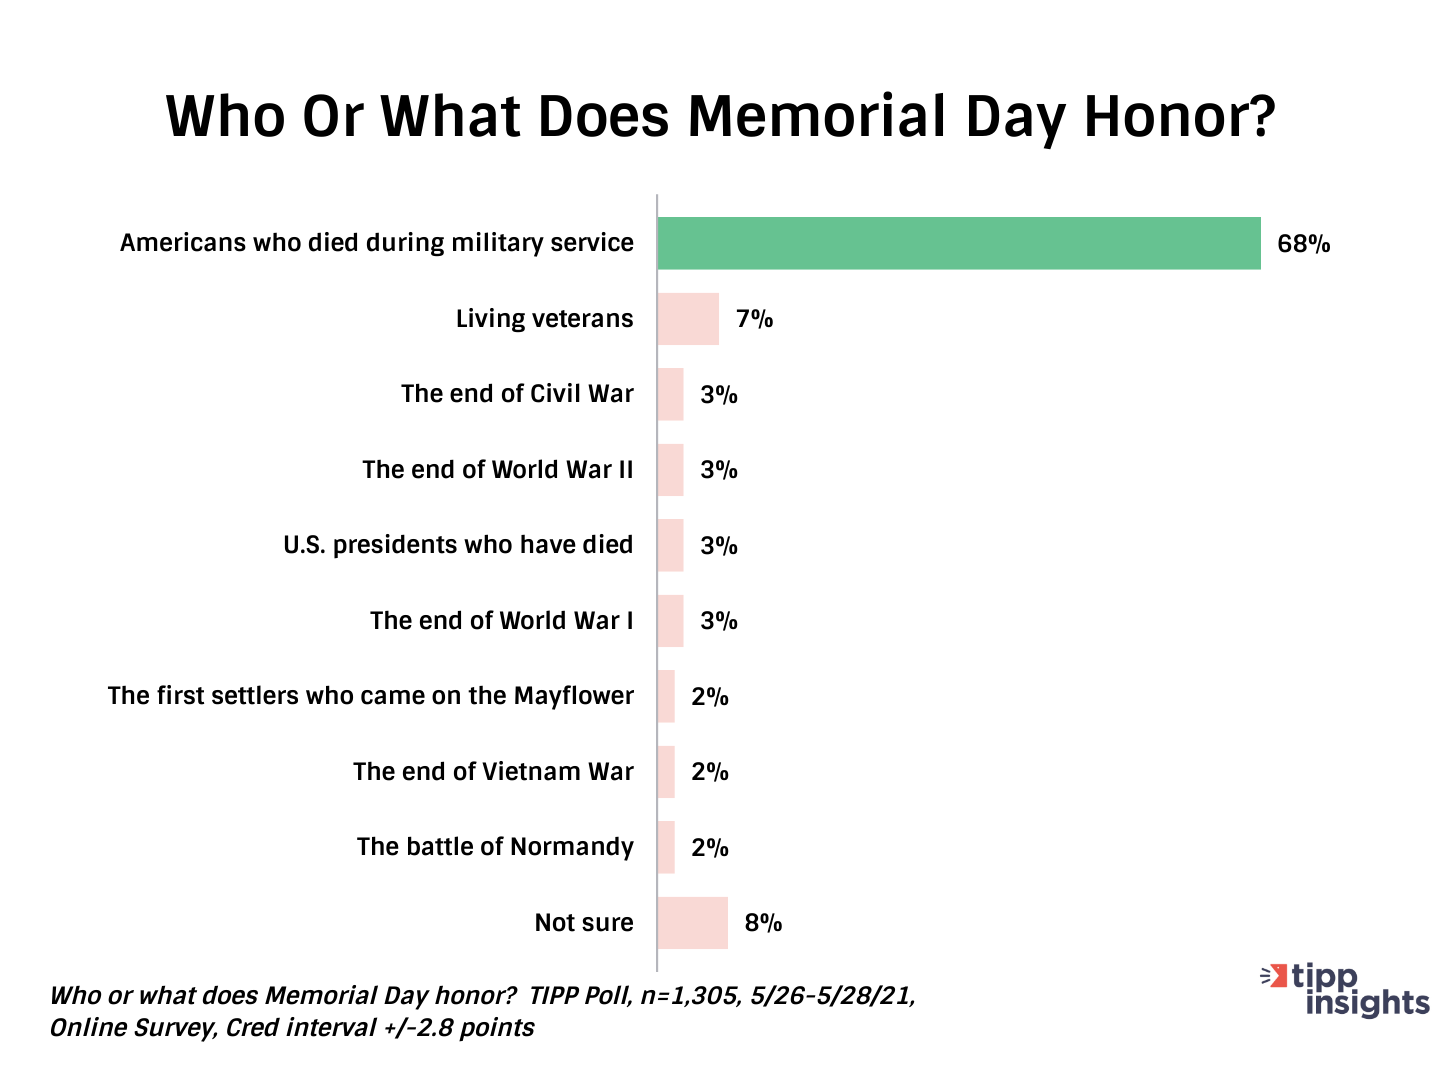 TIPP Poll Results: Asking Americans What Does Memorial Day Honor - Chart